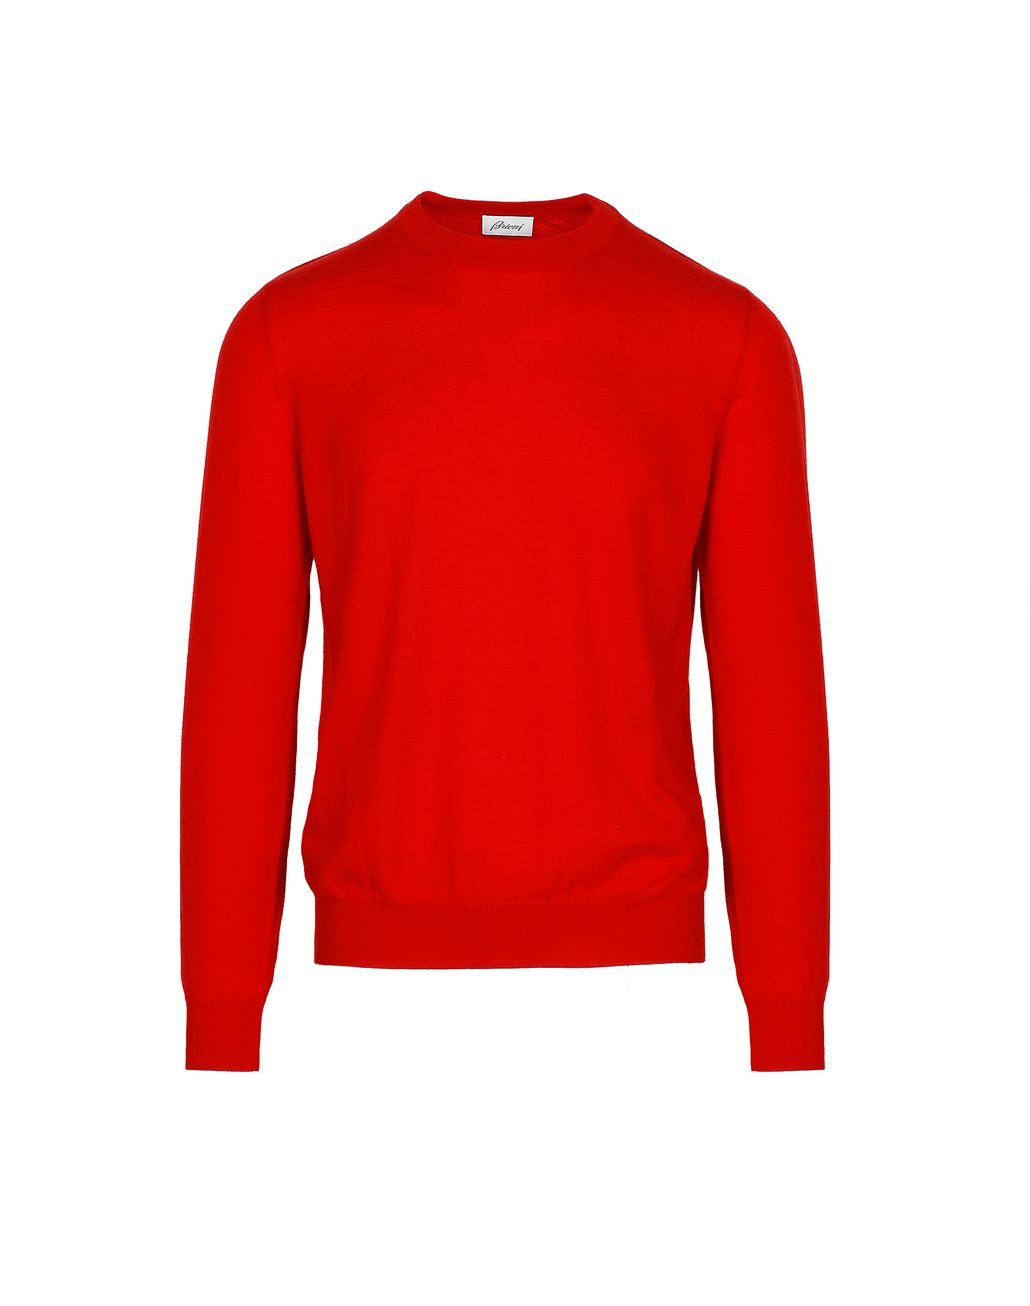 BRIONI Limited Edition Red Cashmere Sweater Knitwear Man f